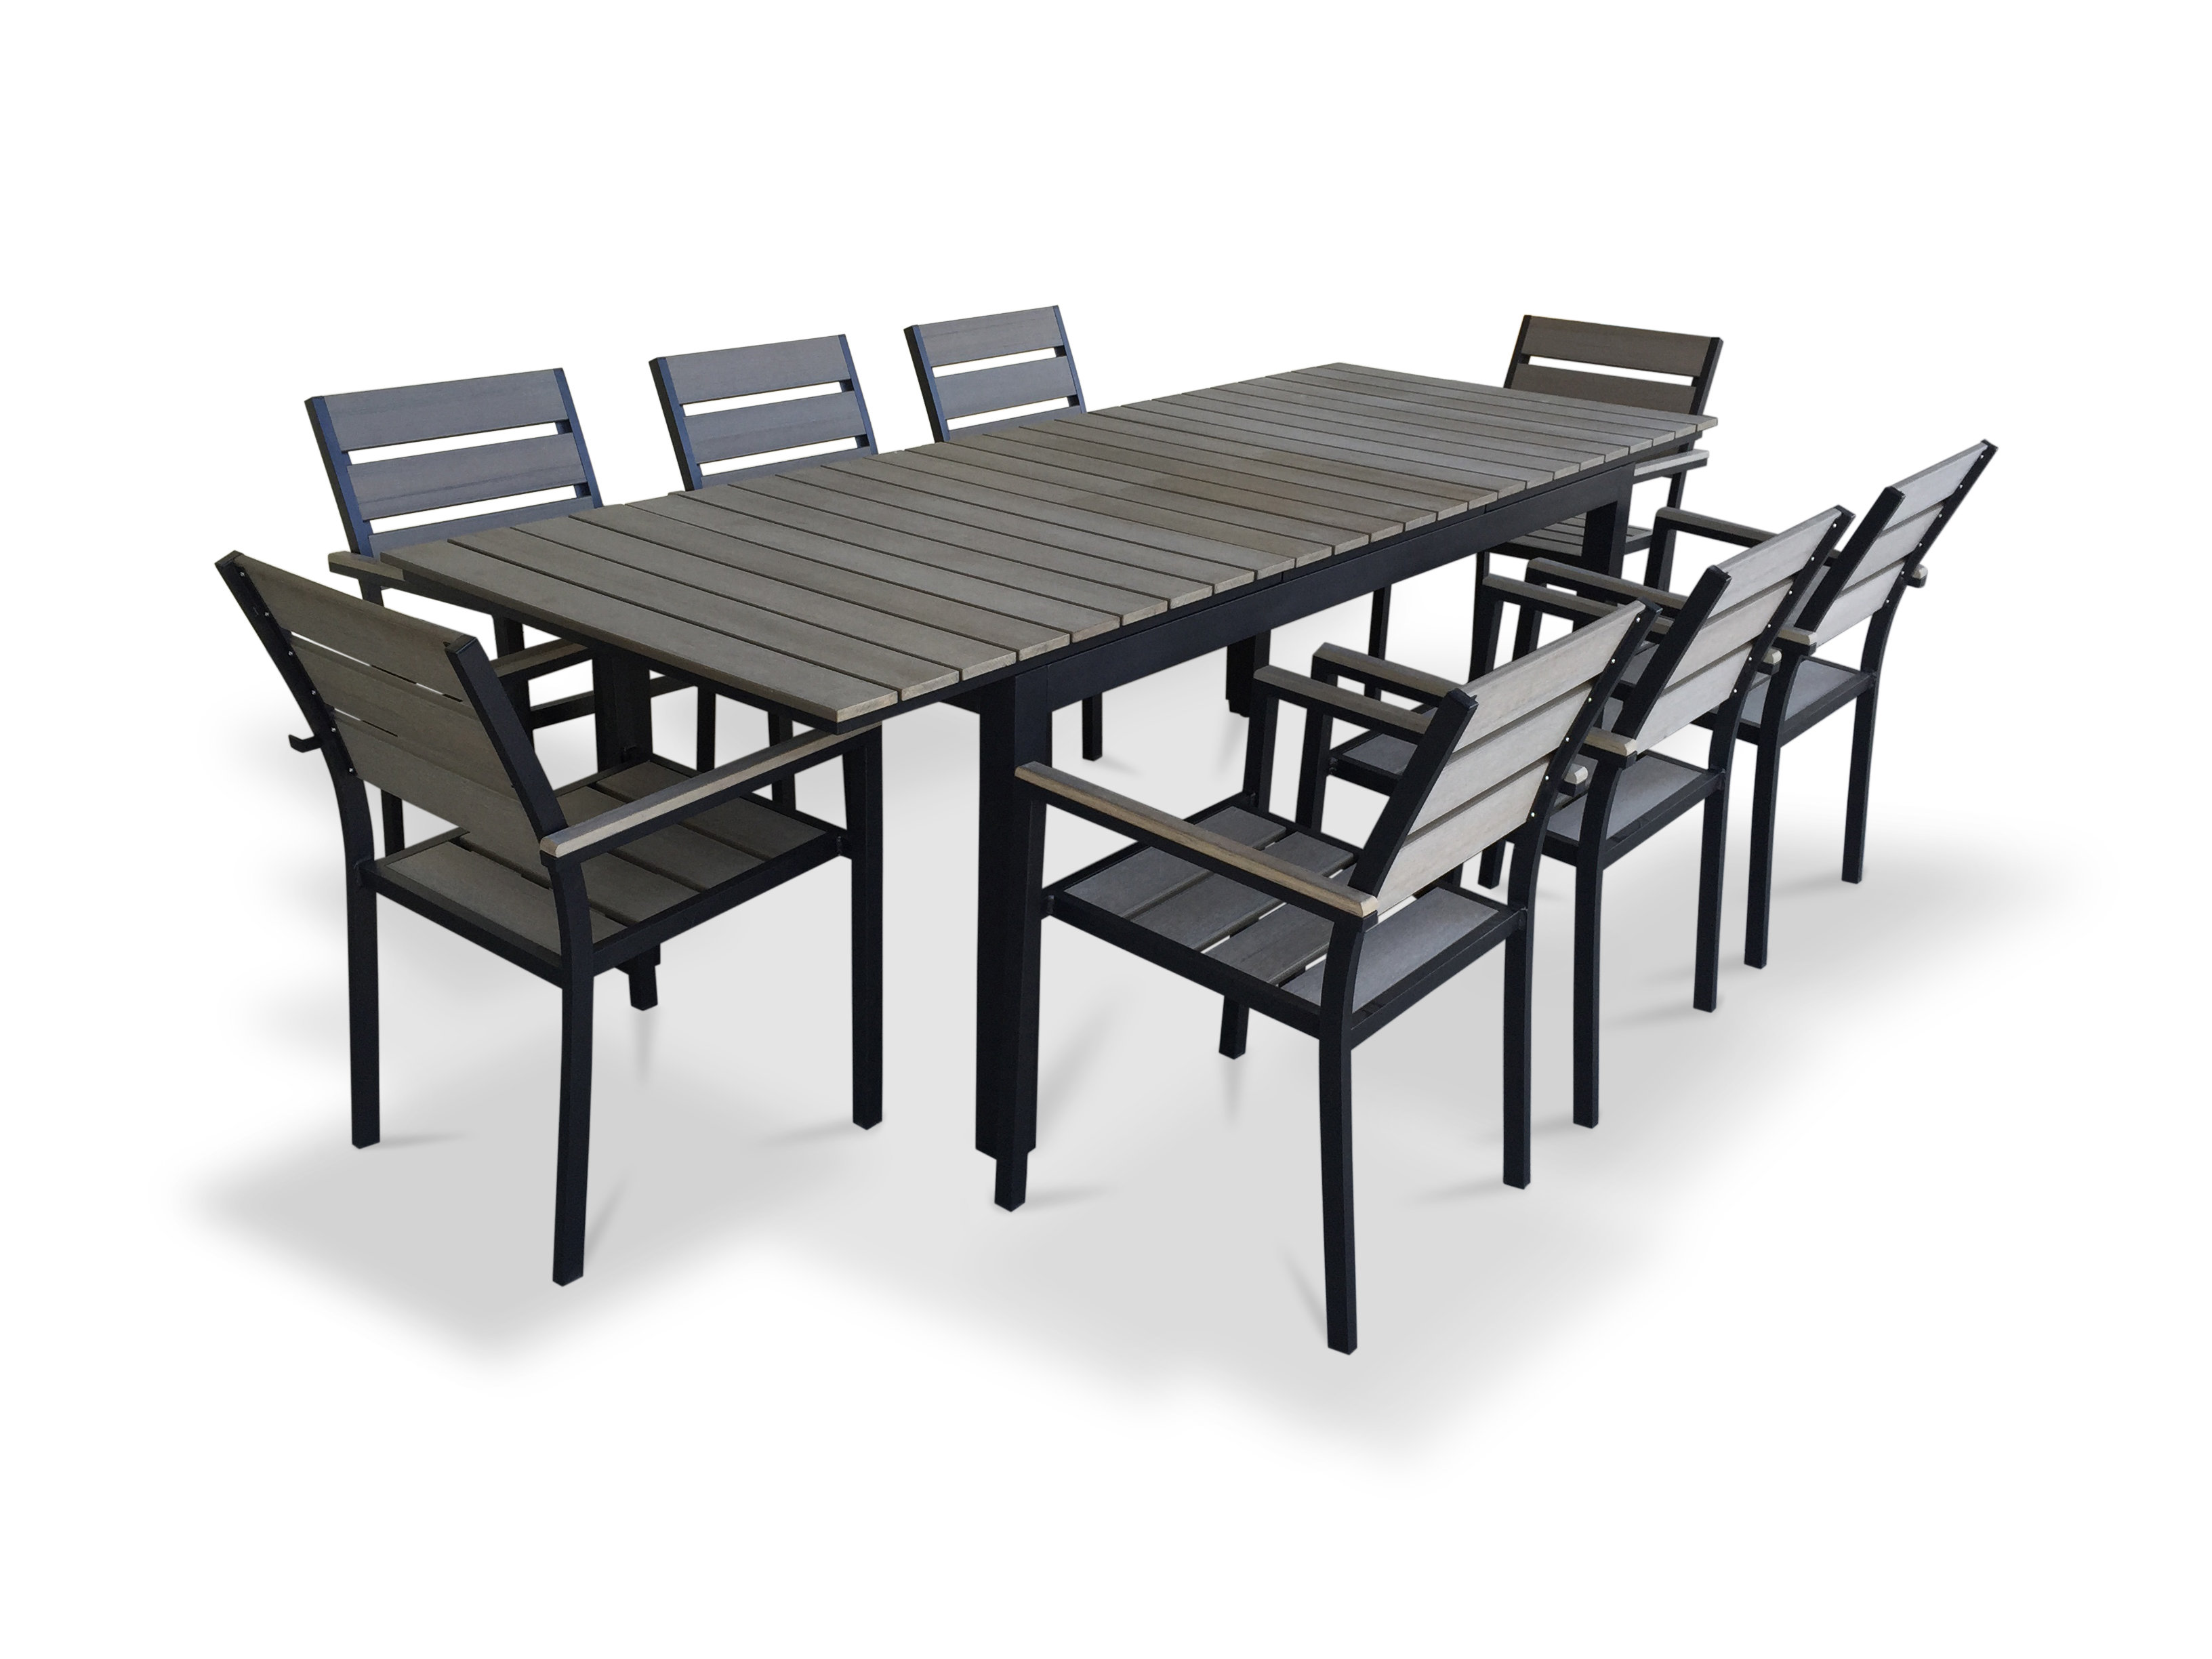 outdoor dining table set piece extendable stratford wicker folding accent bronze quickview ikea center small tiffany style lamps ethan allen silver console large storage trunk